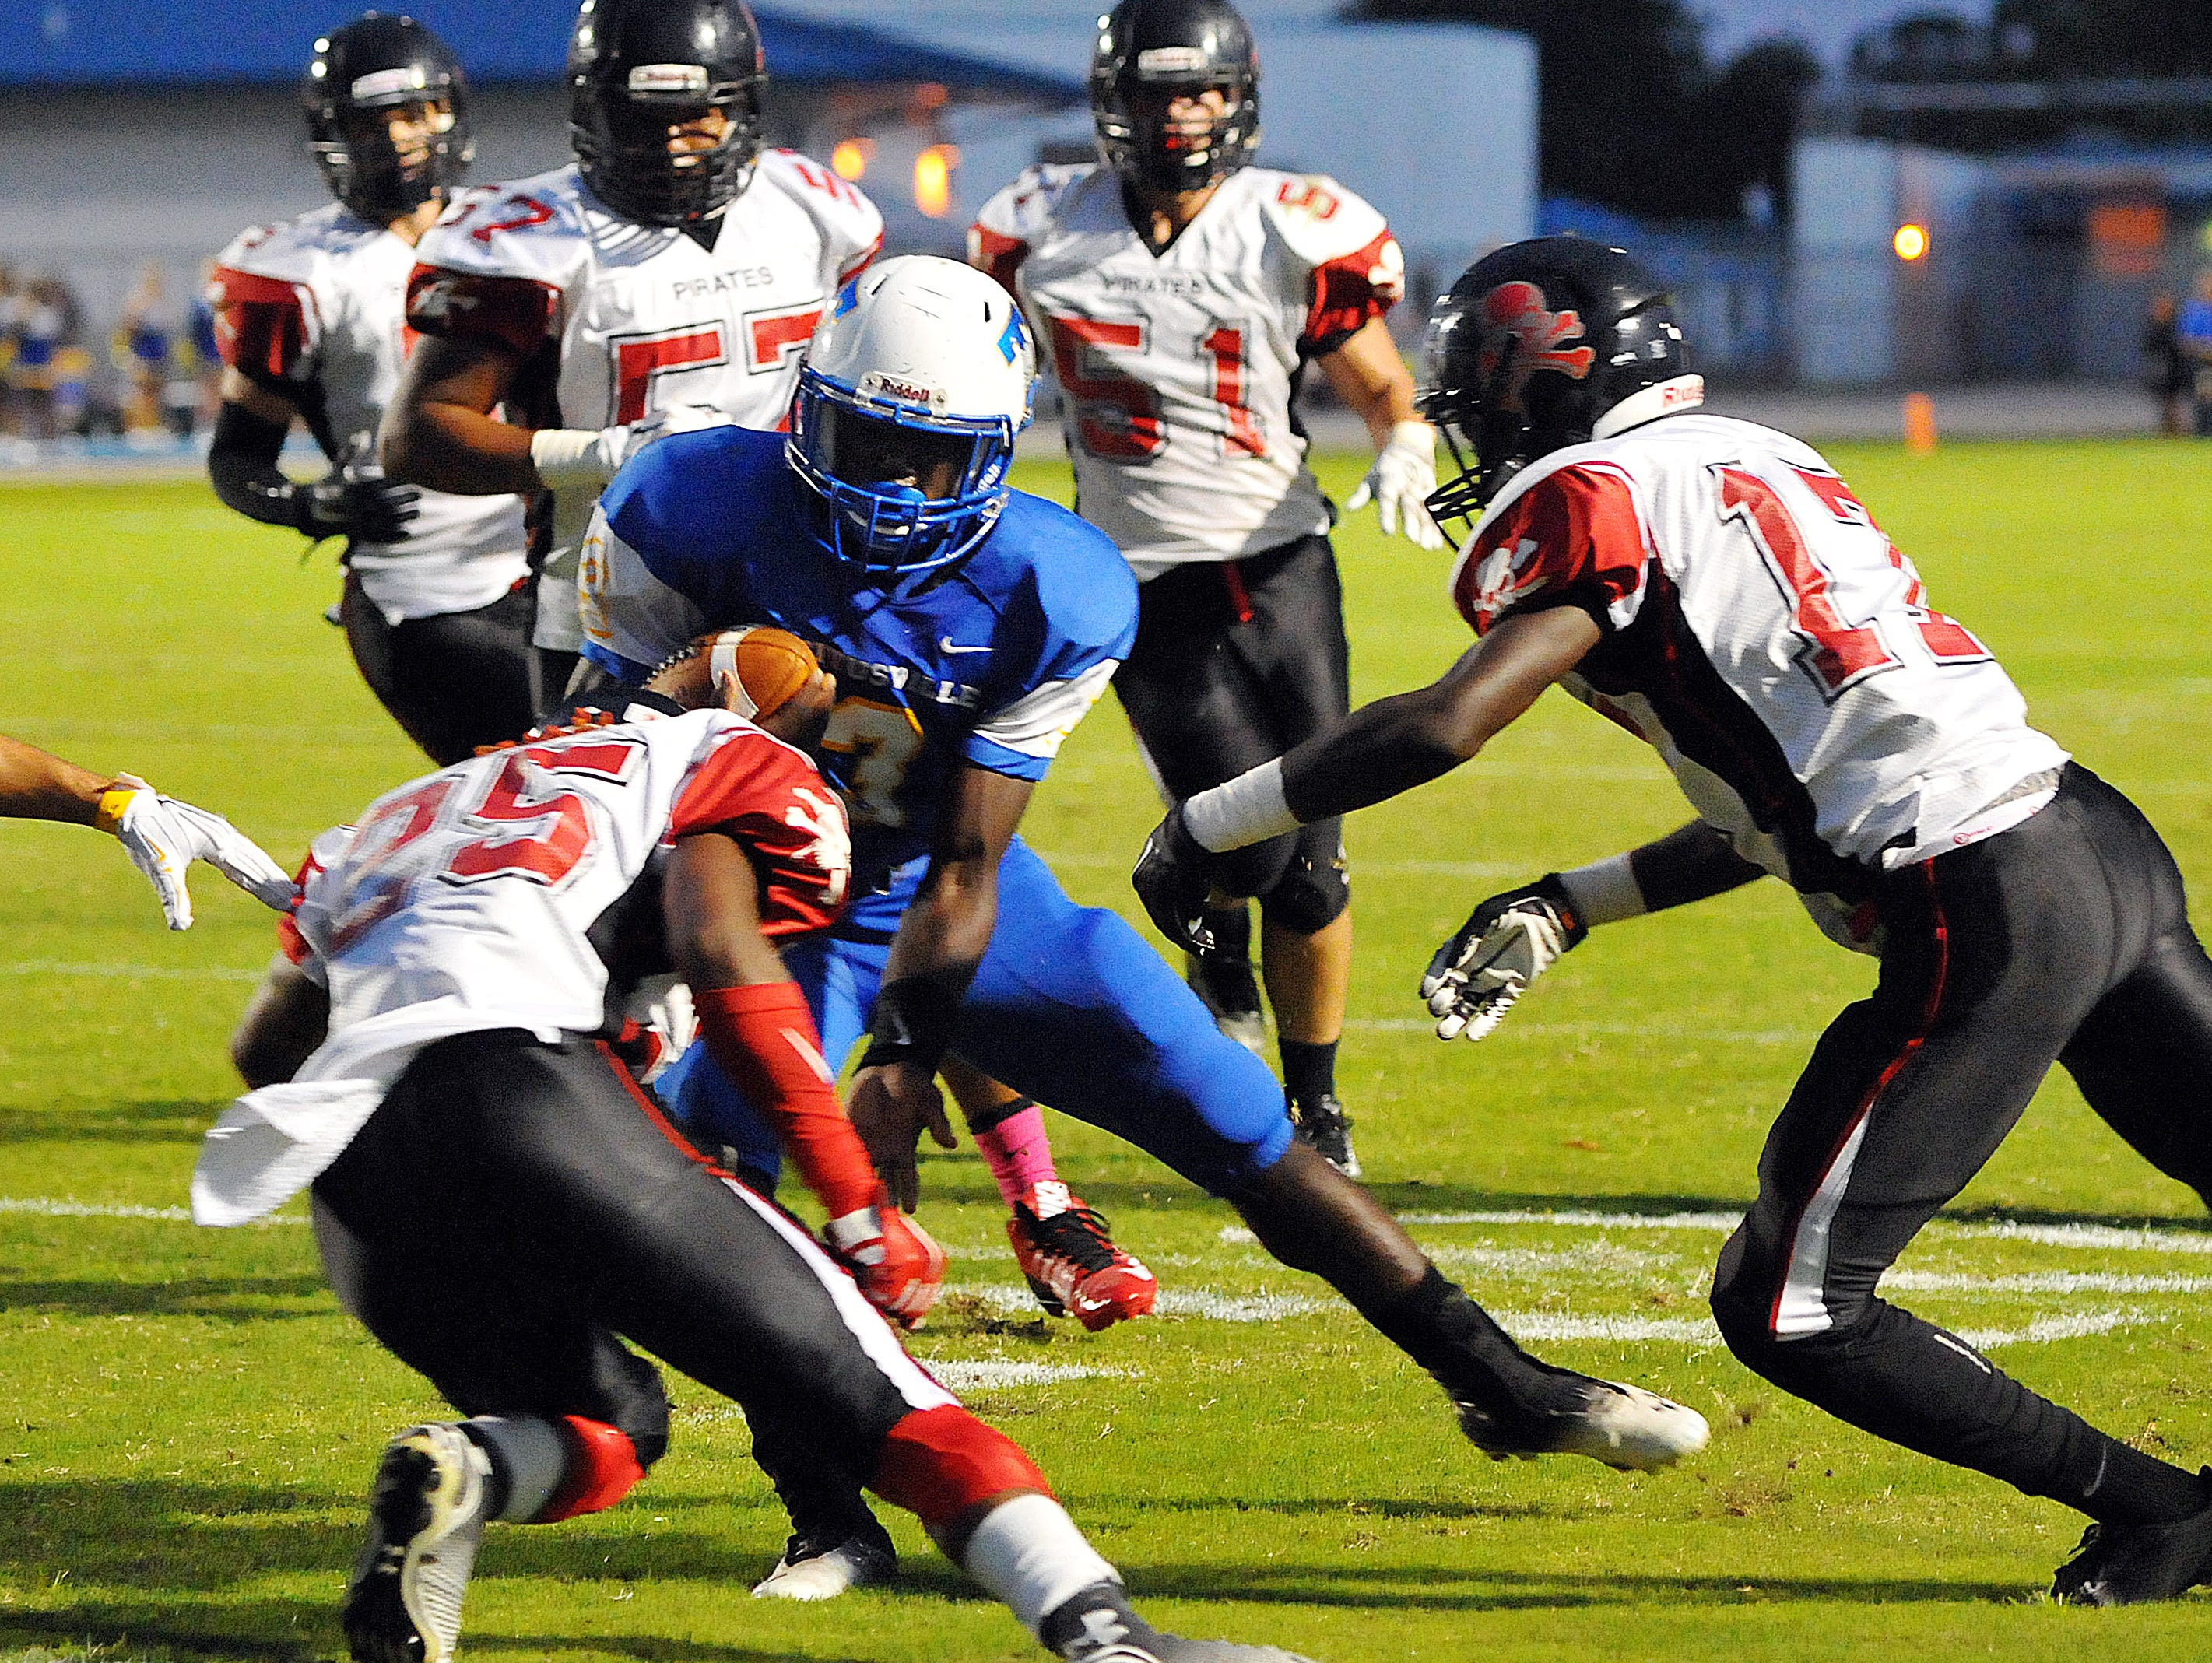 Titusville High's Dontavious Marcus (3) tries to avoid a host of Palm Bay high defenders during Friday night's game held at the Titusville High School football stadium.